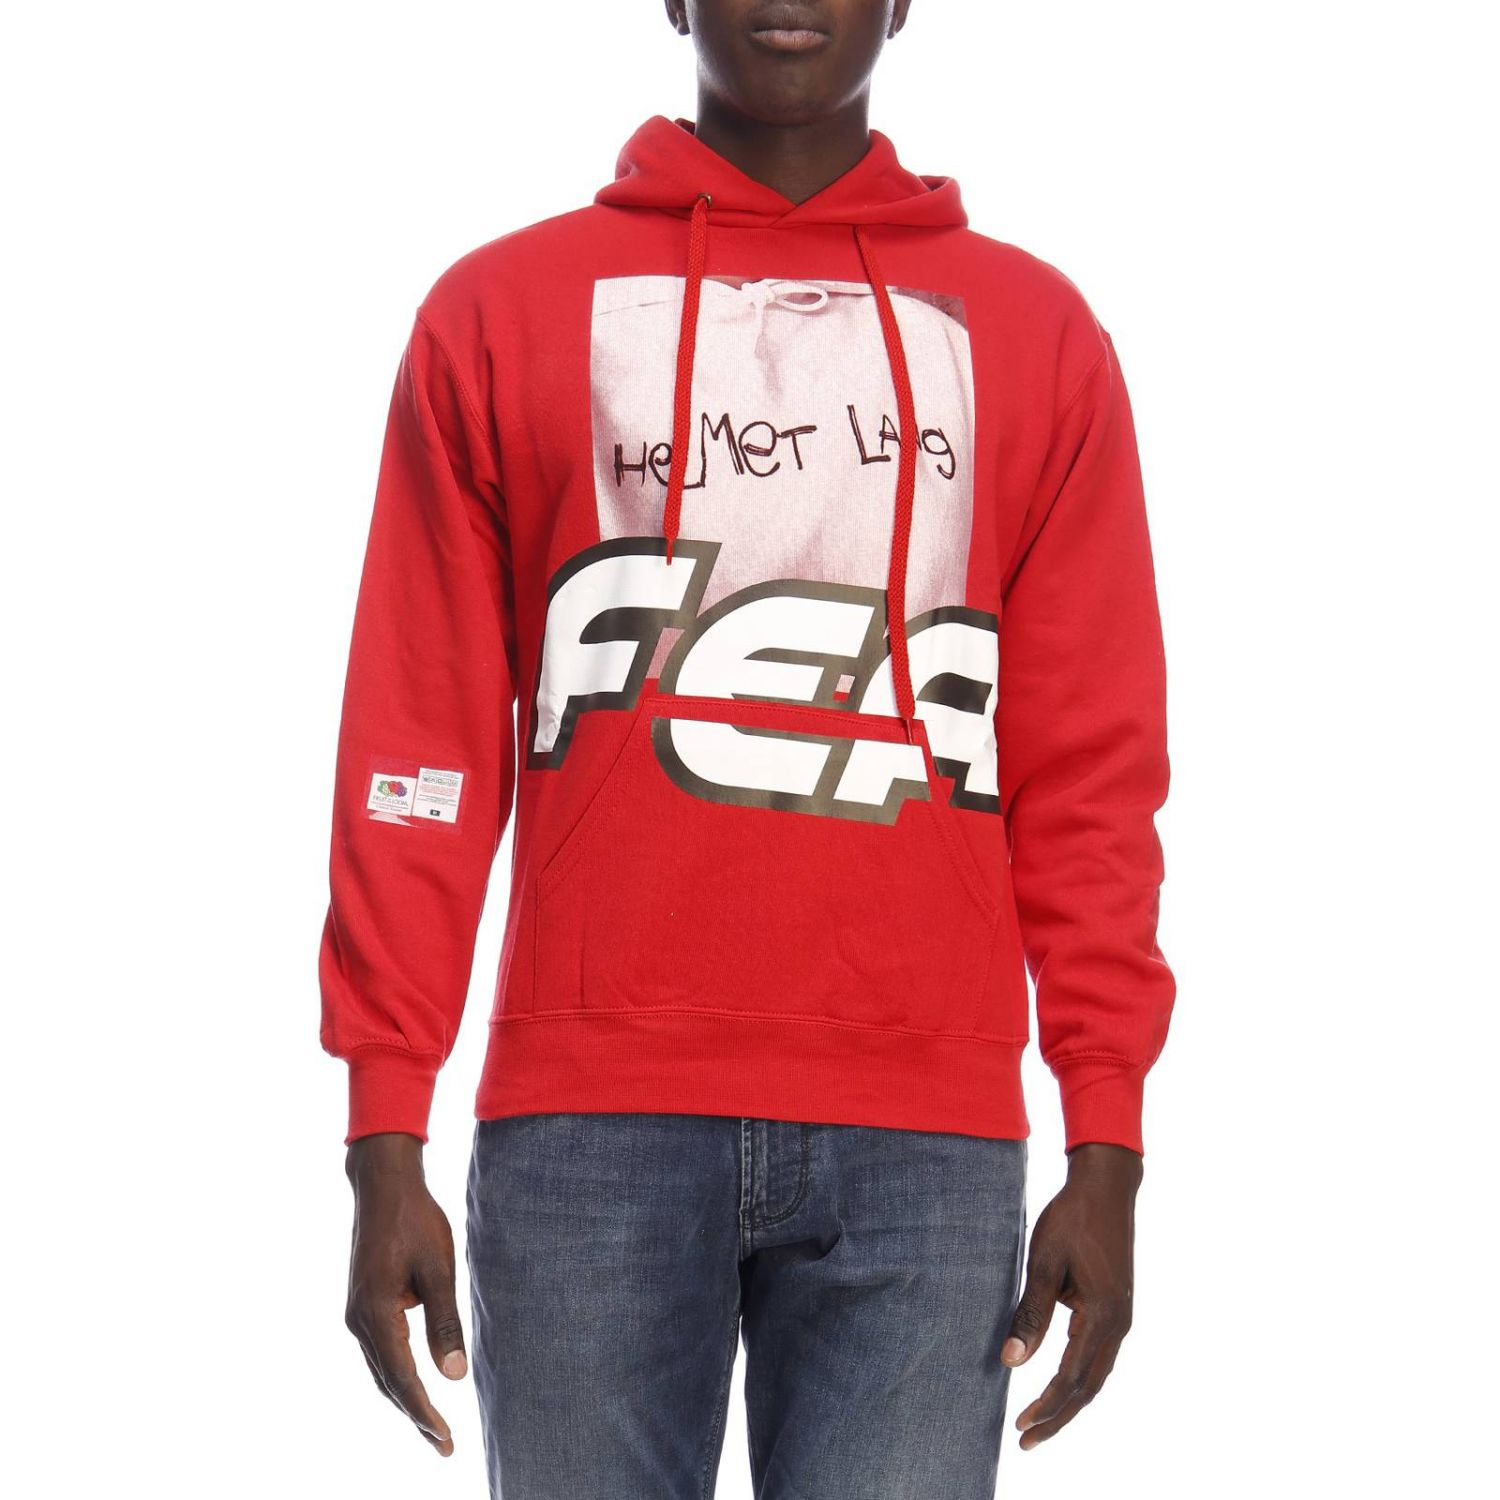 Jumper men Sold Out red 1